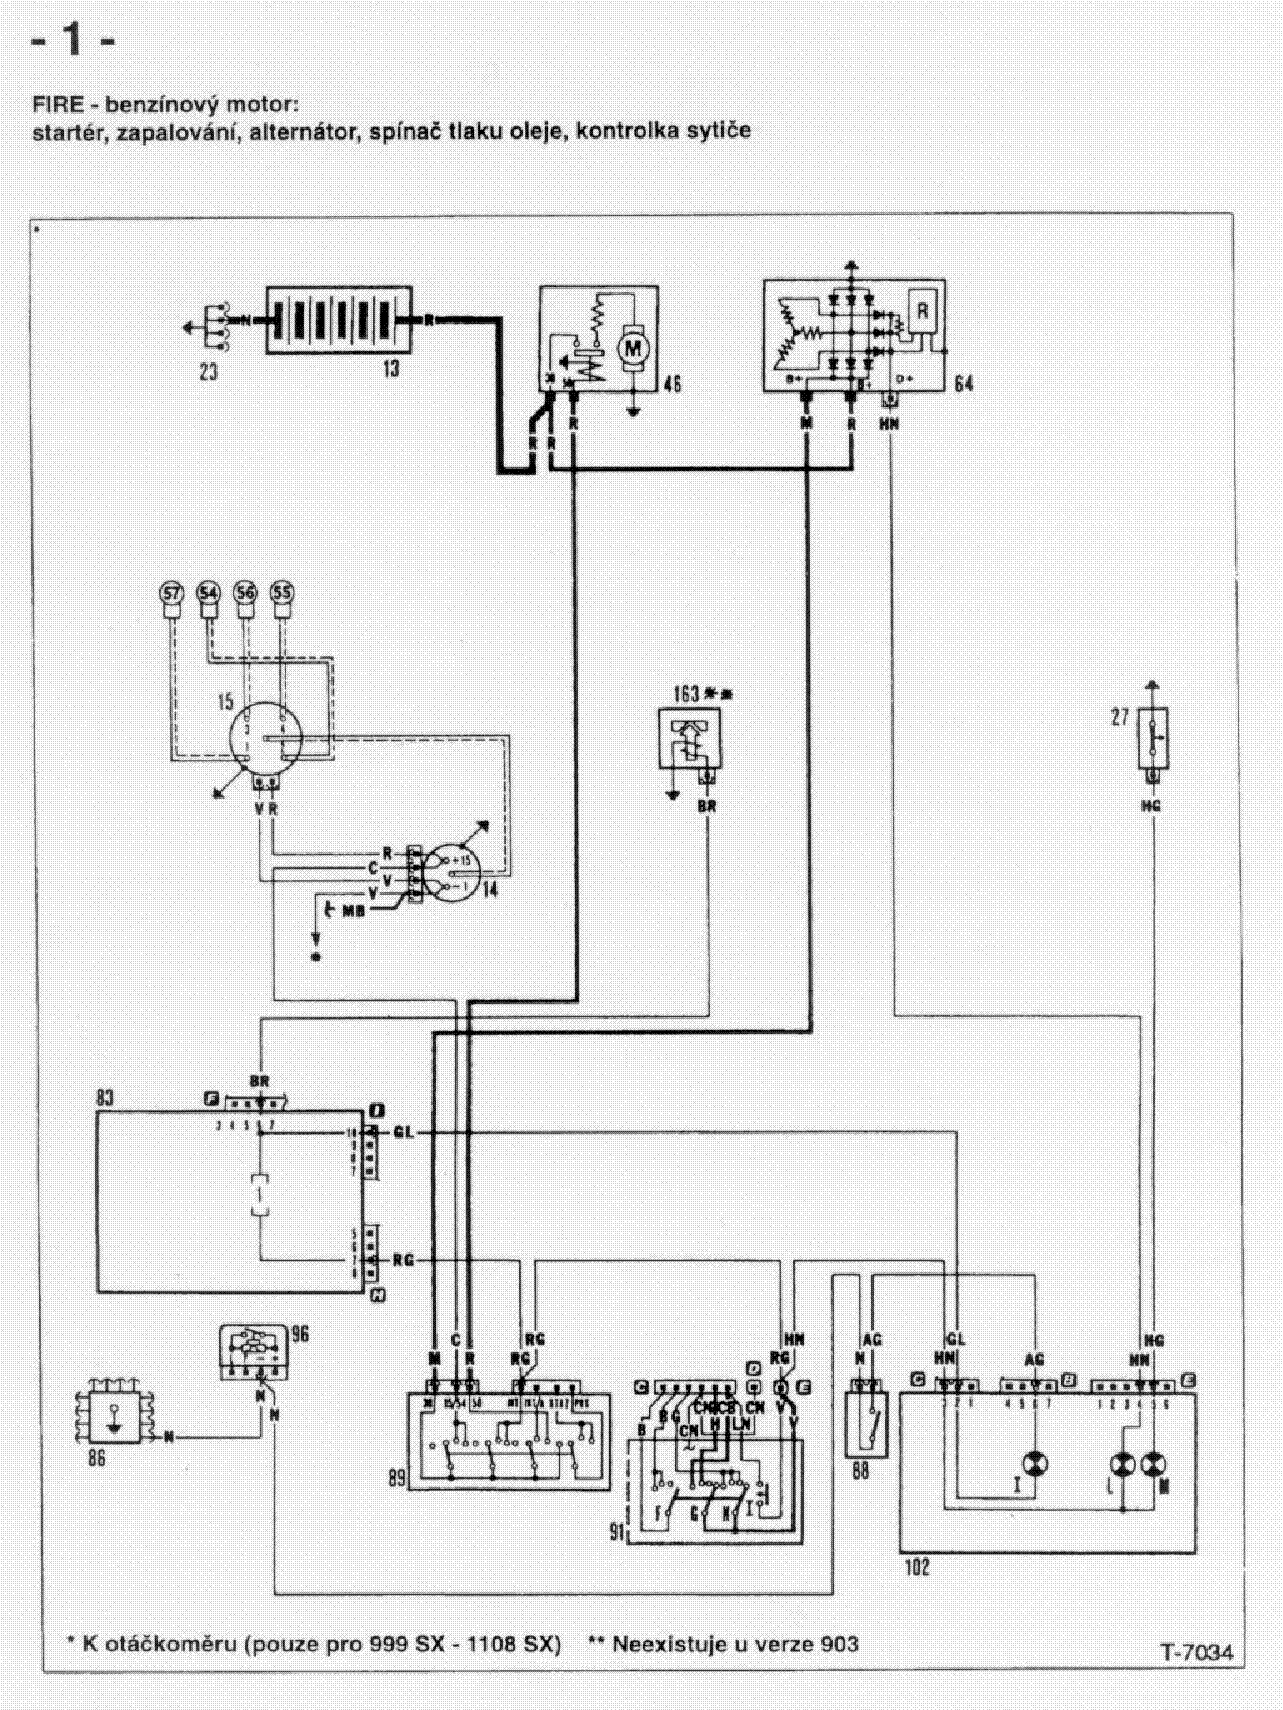 fiat uno wiring diagram service manual download schematics eeprom rh elektrotanya com fiat punto electrical wiring diagram fiat punto evo wiring diagram